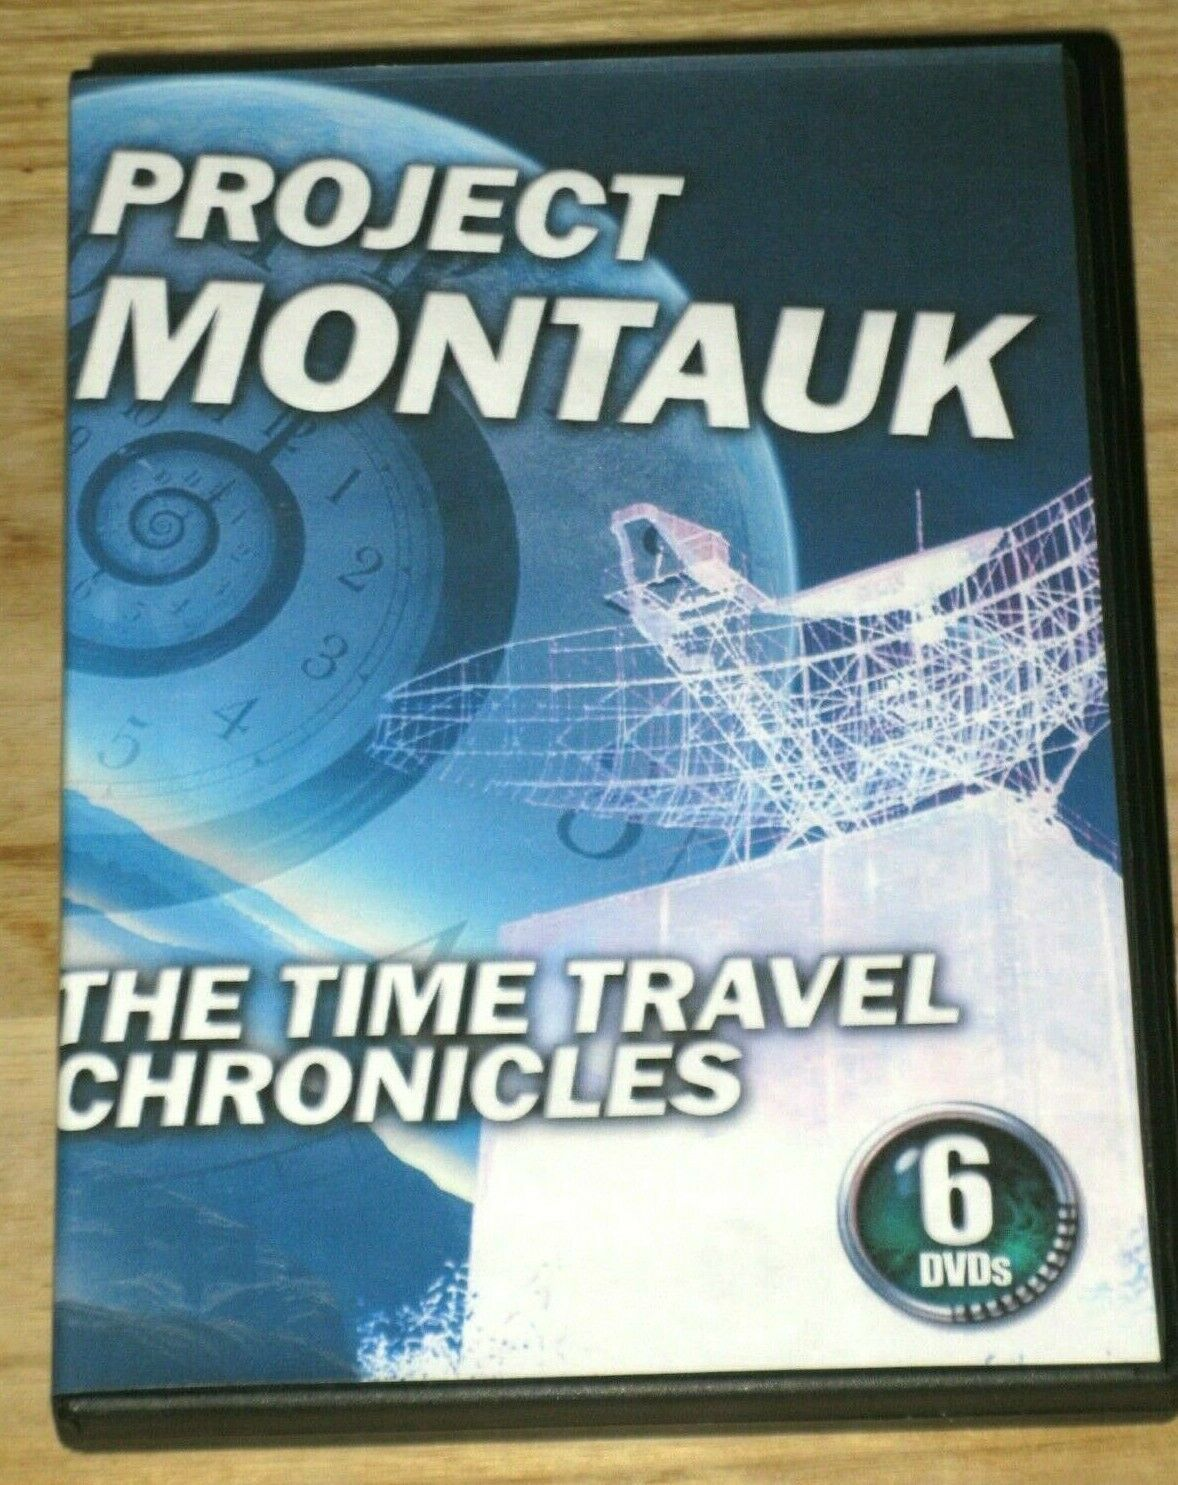 Project Montauk The Time Travel Chronicles Philadelphia Experiment 12 Hours For Sale Online Ebay First published at 06:22 utc on march 30th, 2020. project montauk the time travel chronicles preston nichols al bielek